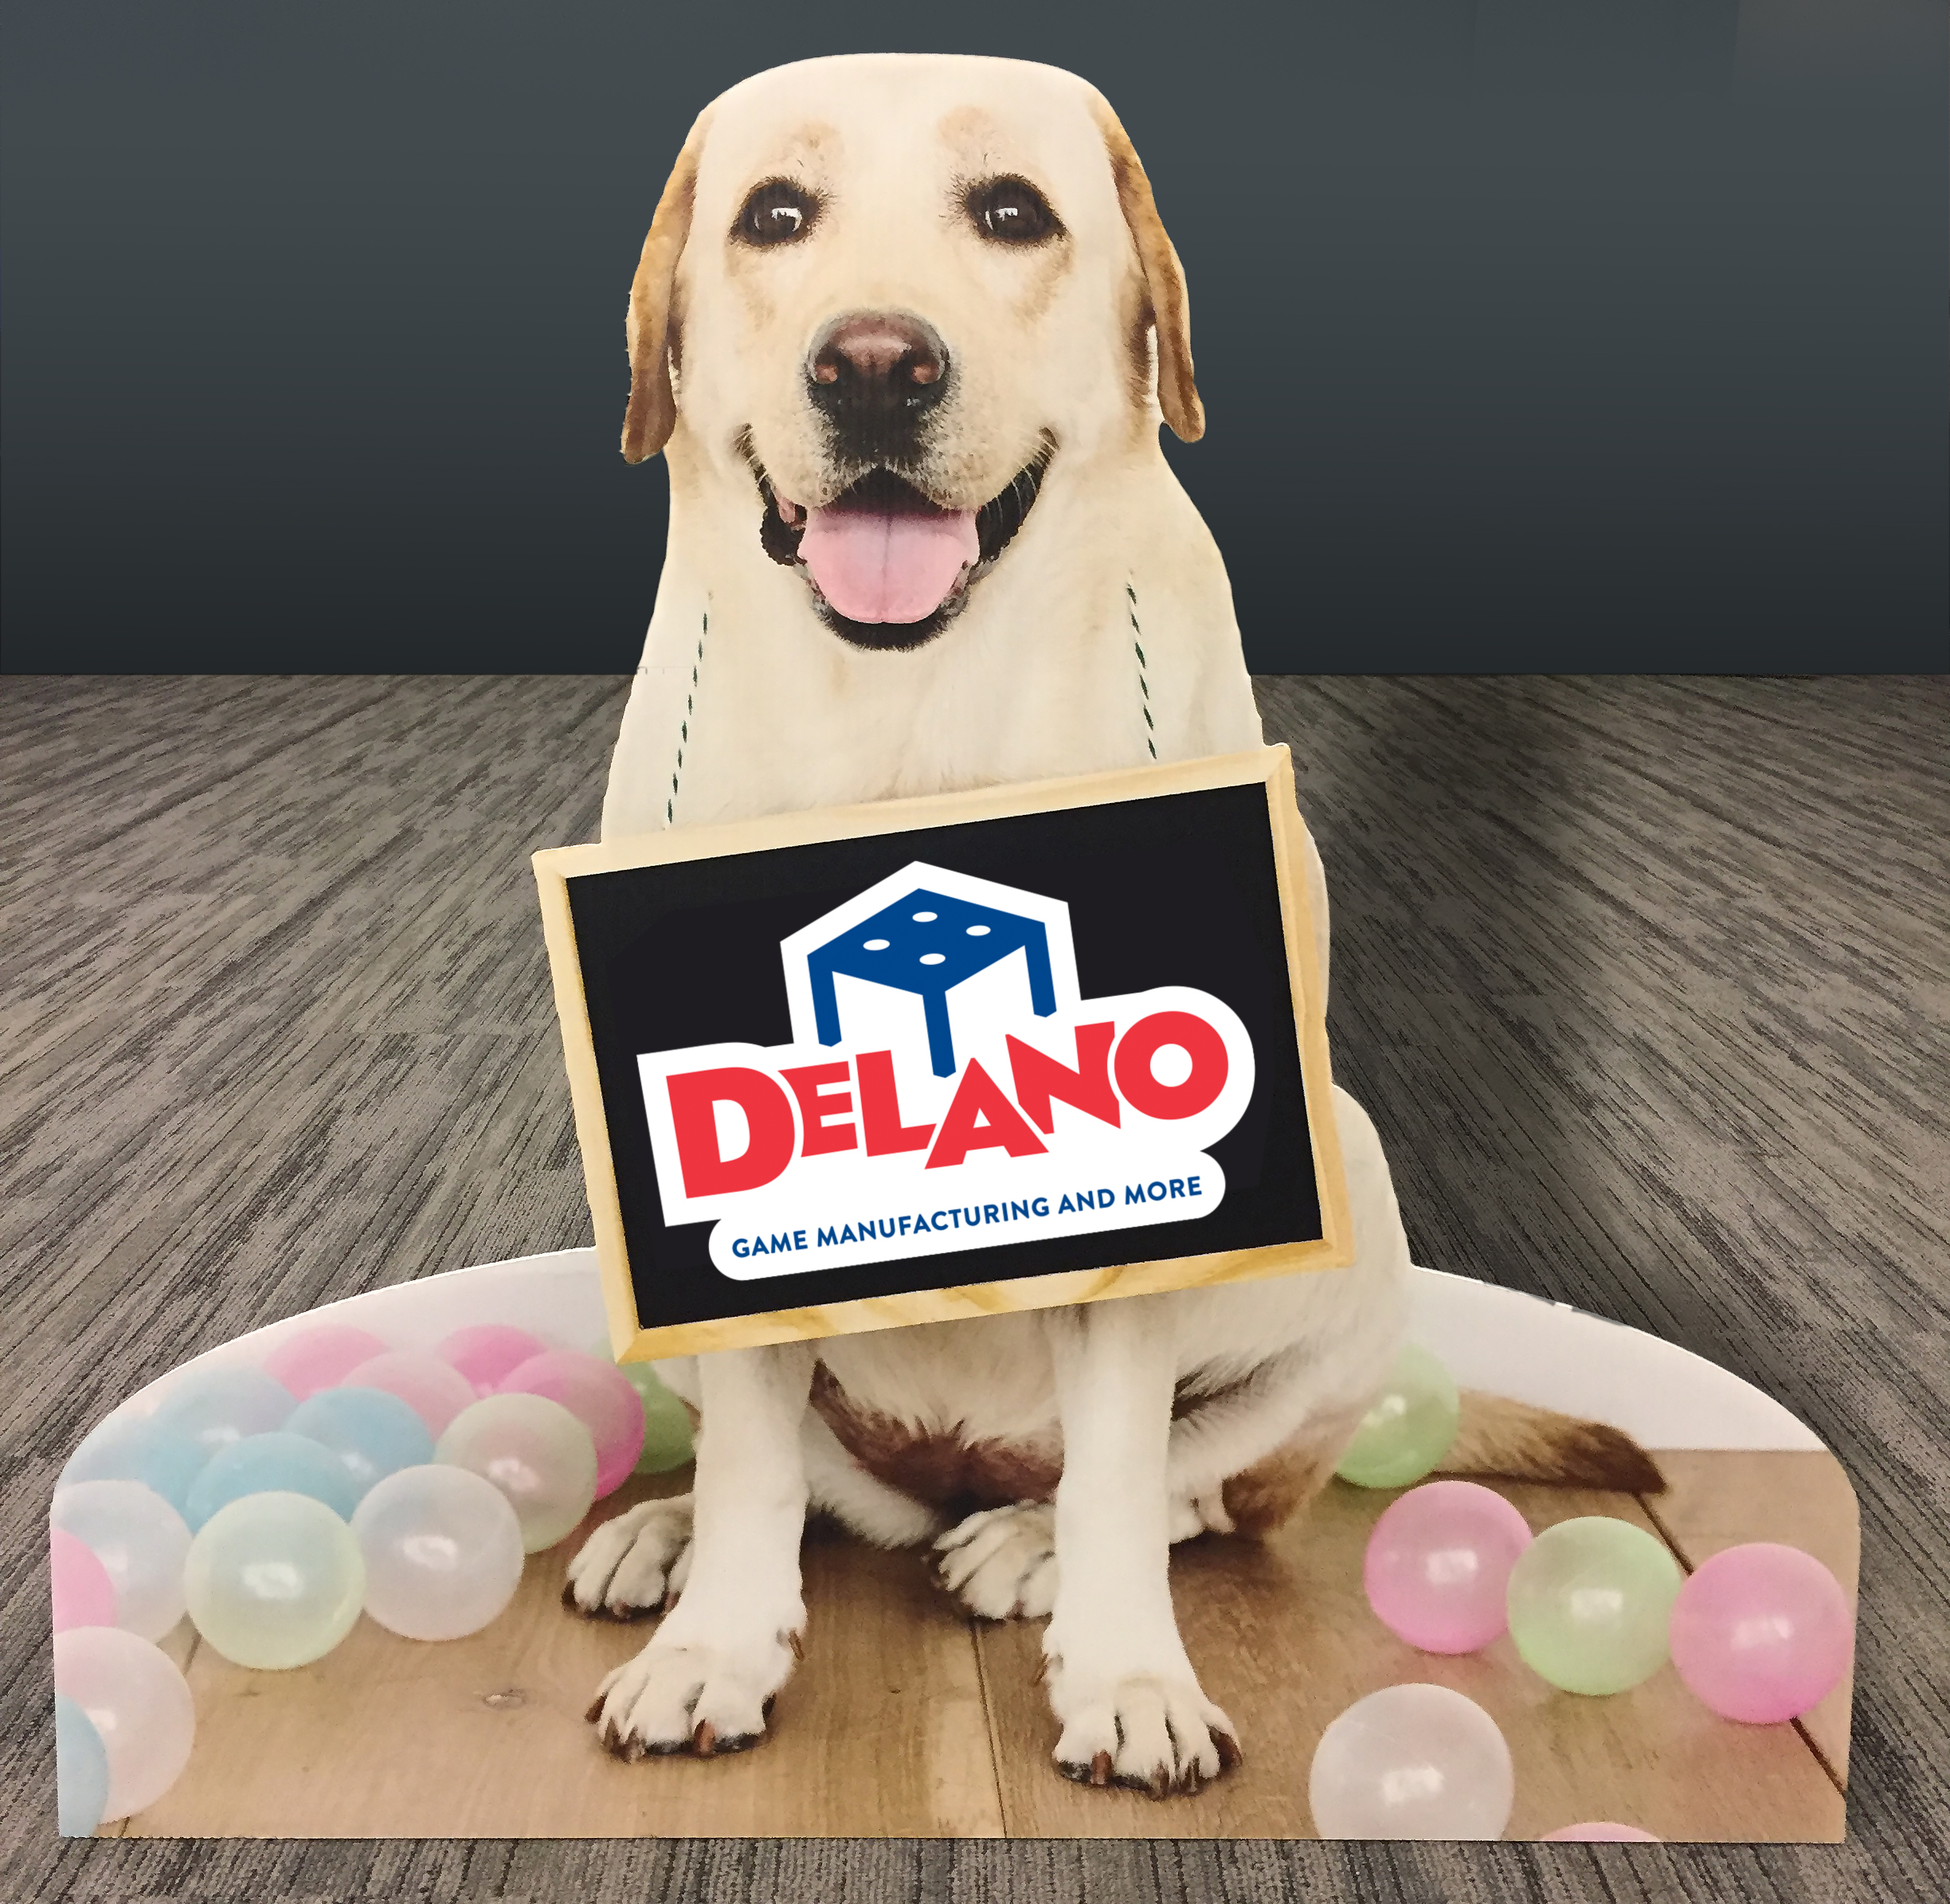 DeLano_Dog new logo_cropped